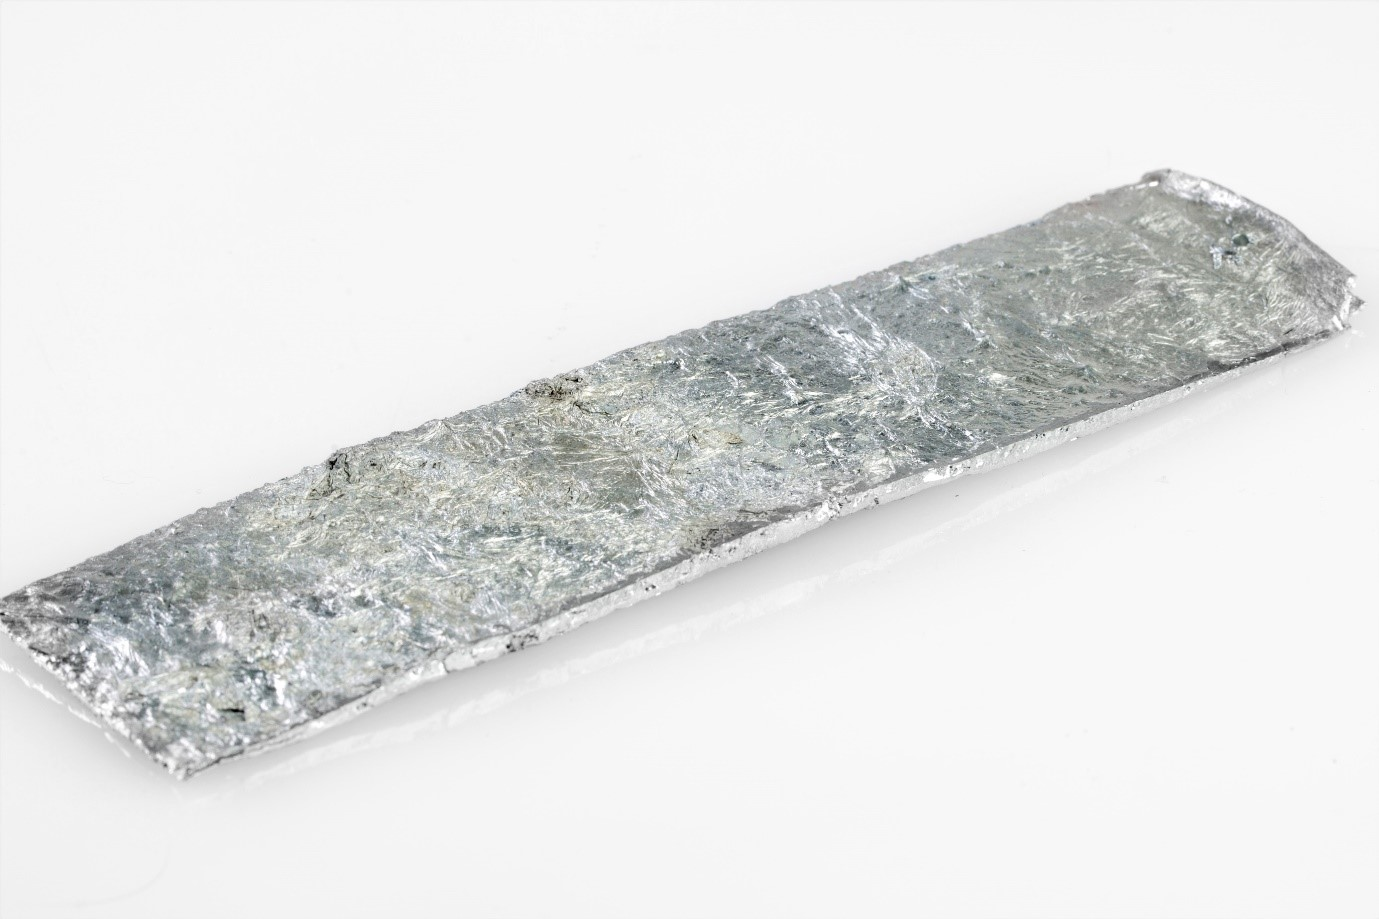 High-purity zinc anode for use when tank plating with zinc